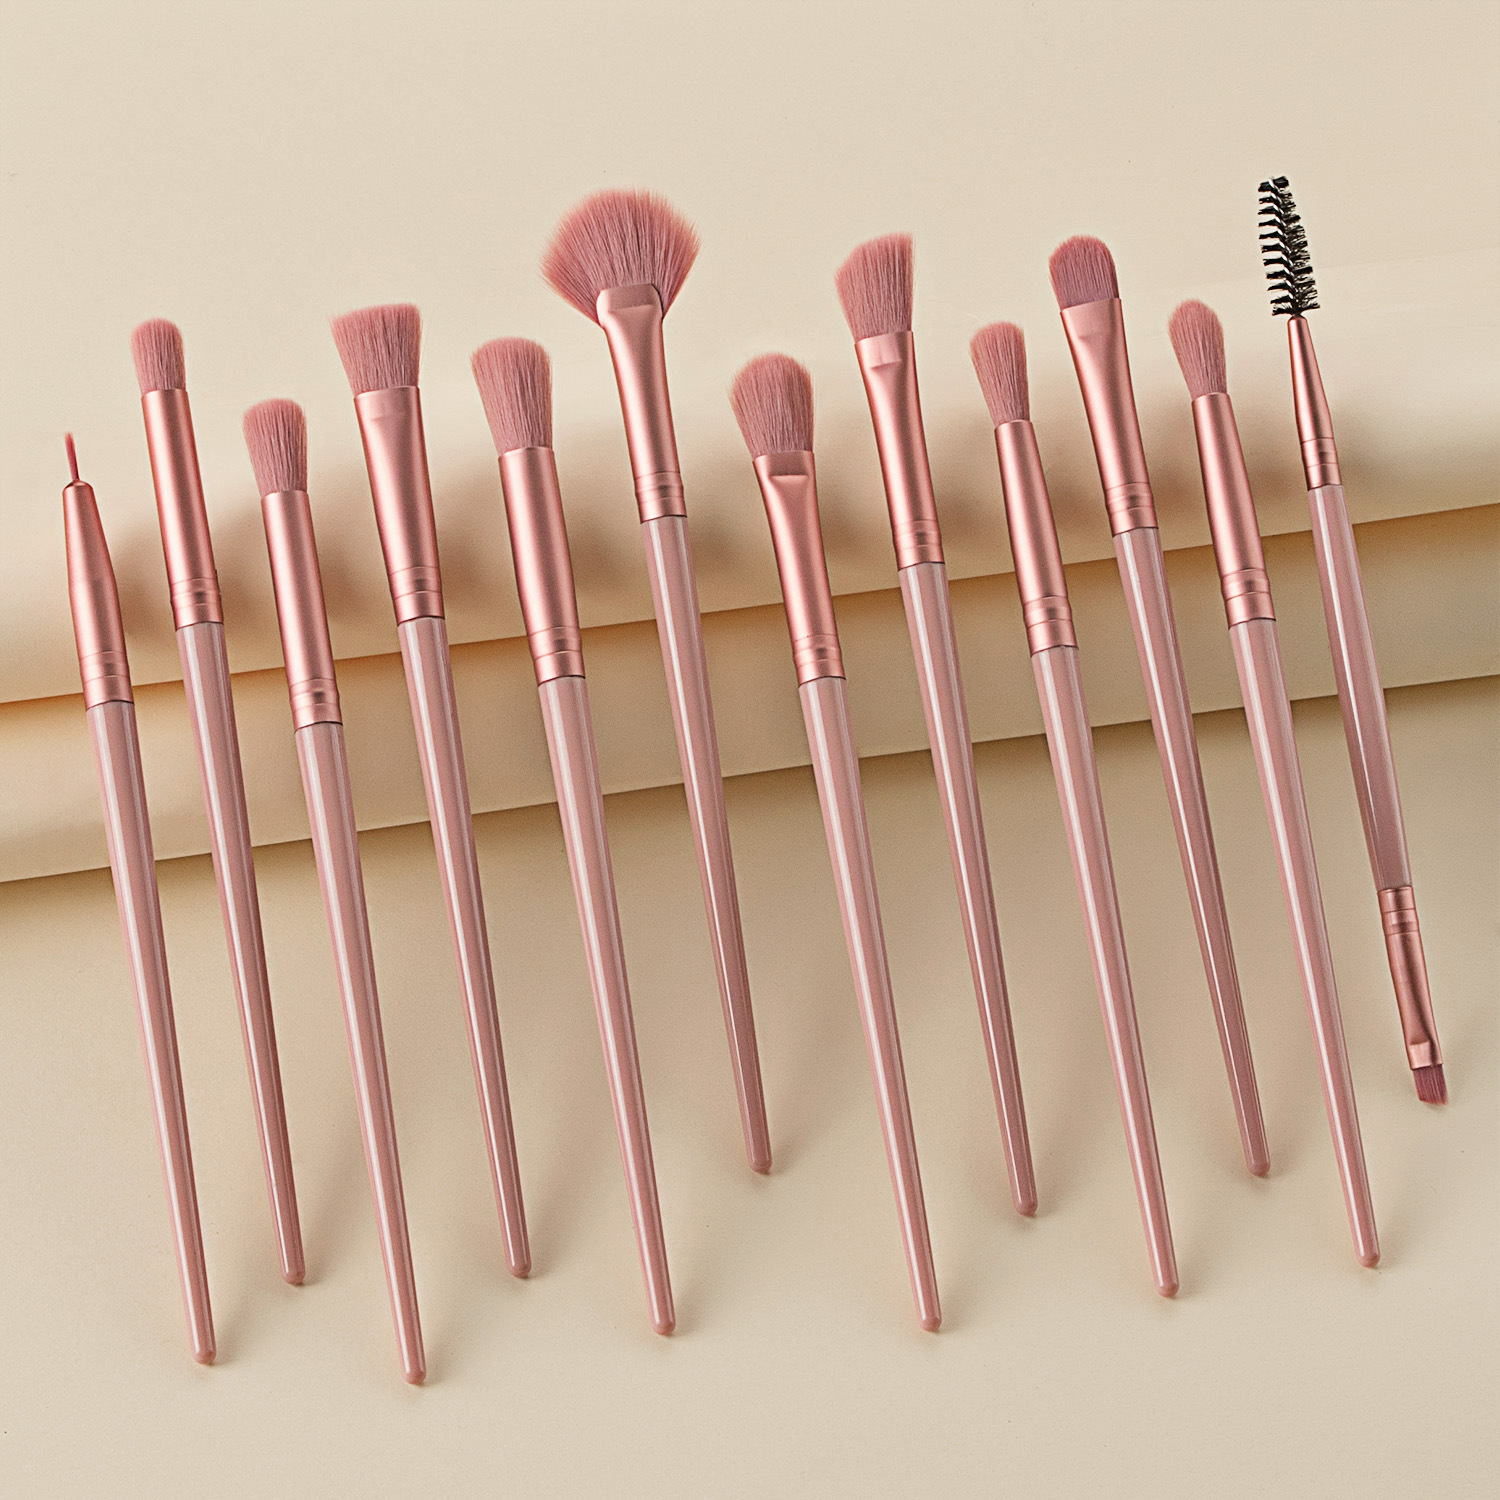 12PCS Makeup Brushes Set Powder Blush Fan Brush Eyeshadow Blending Brush Shading Eyebrow Contour Makeup Set Pinceis De Maquiagem